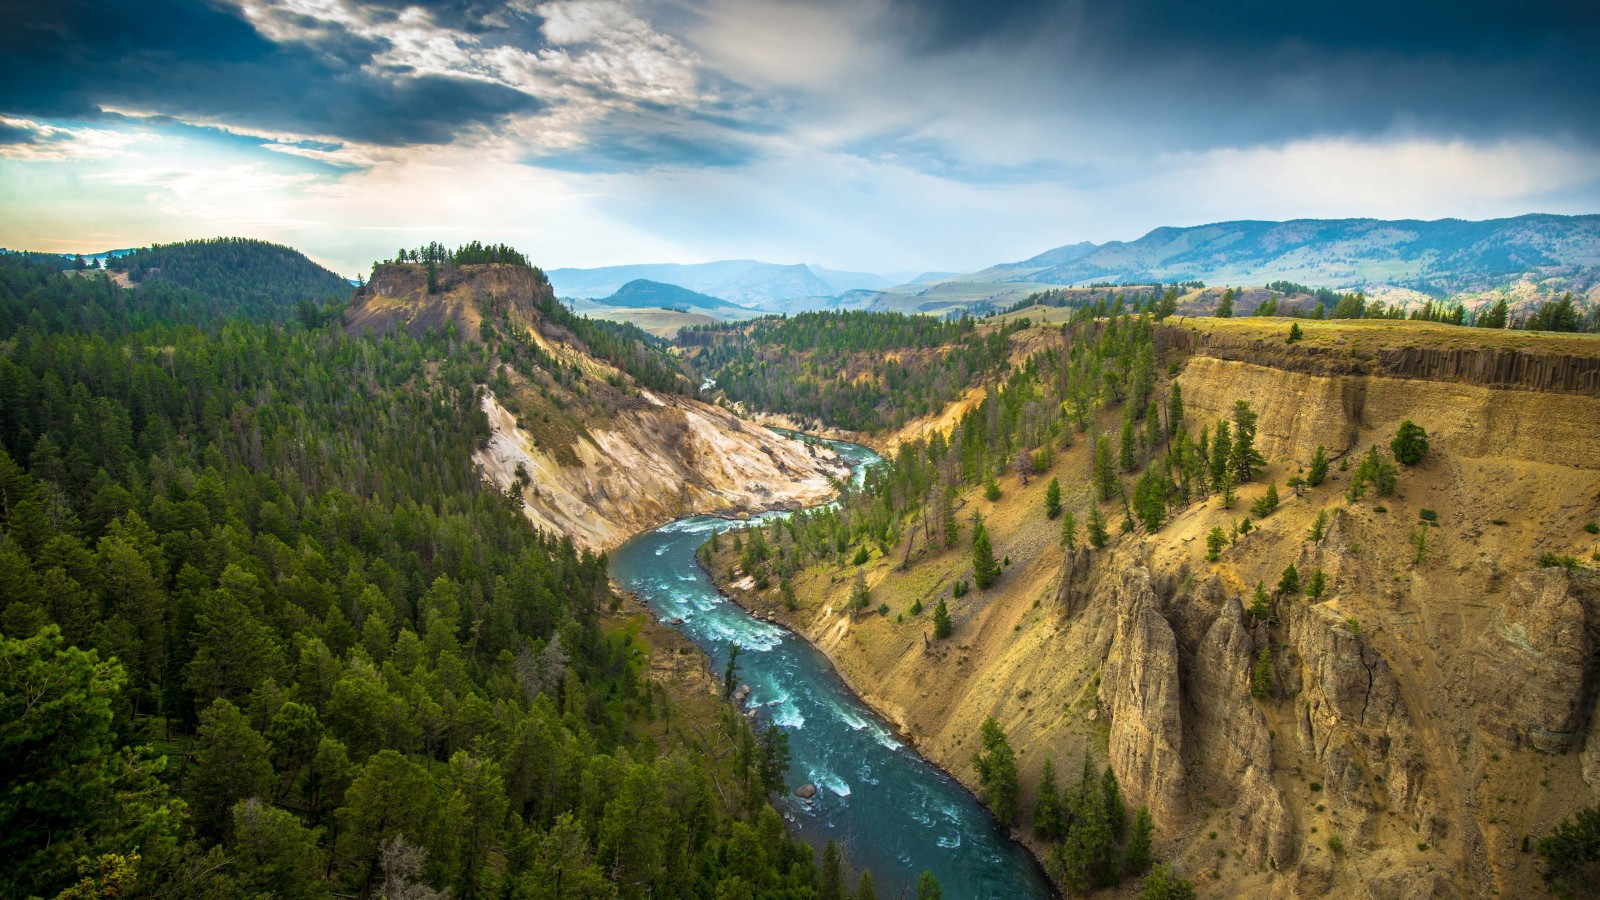 The River, Grand Canyon of Yellowstone National Park, USA Wallpaper for Desktop 1600x900